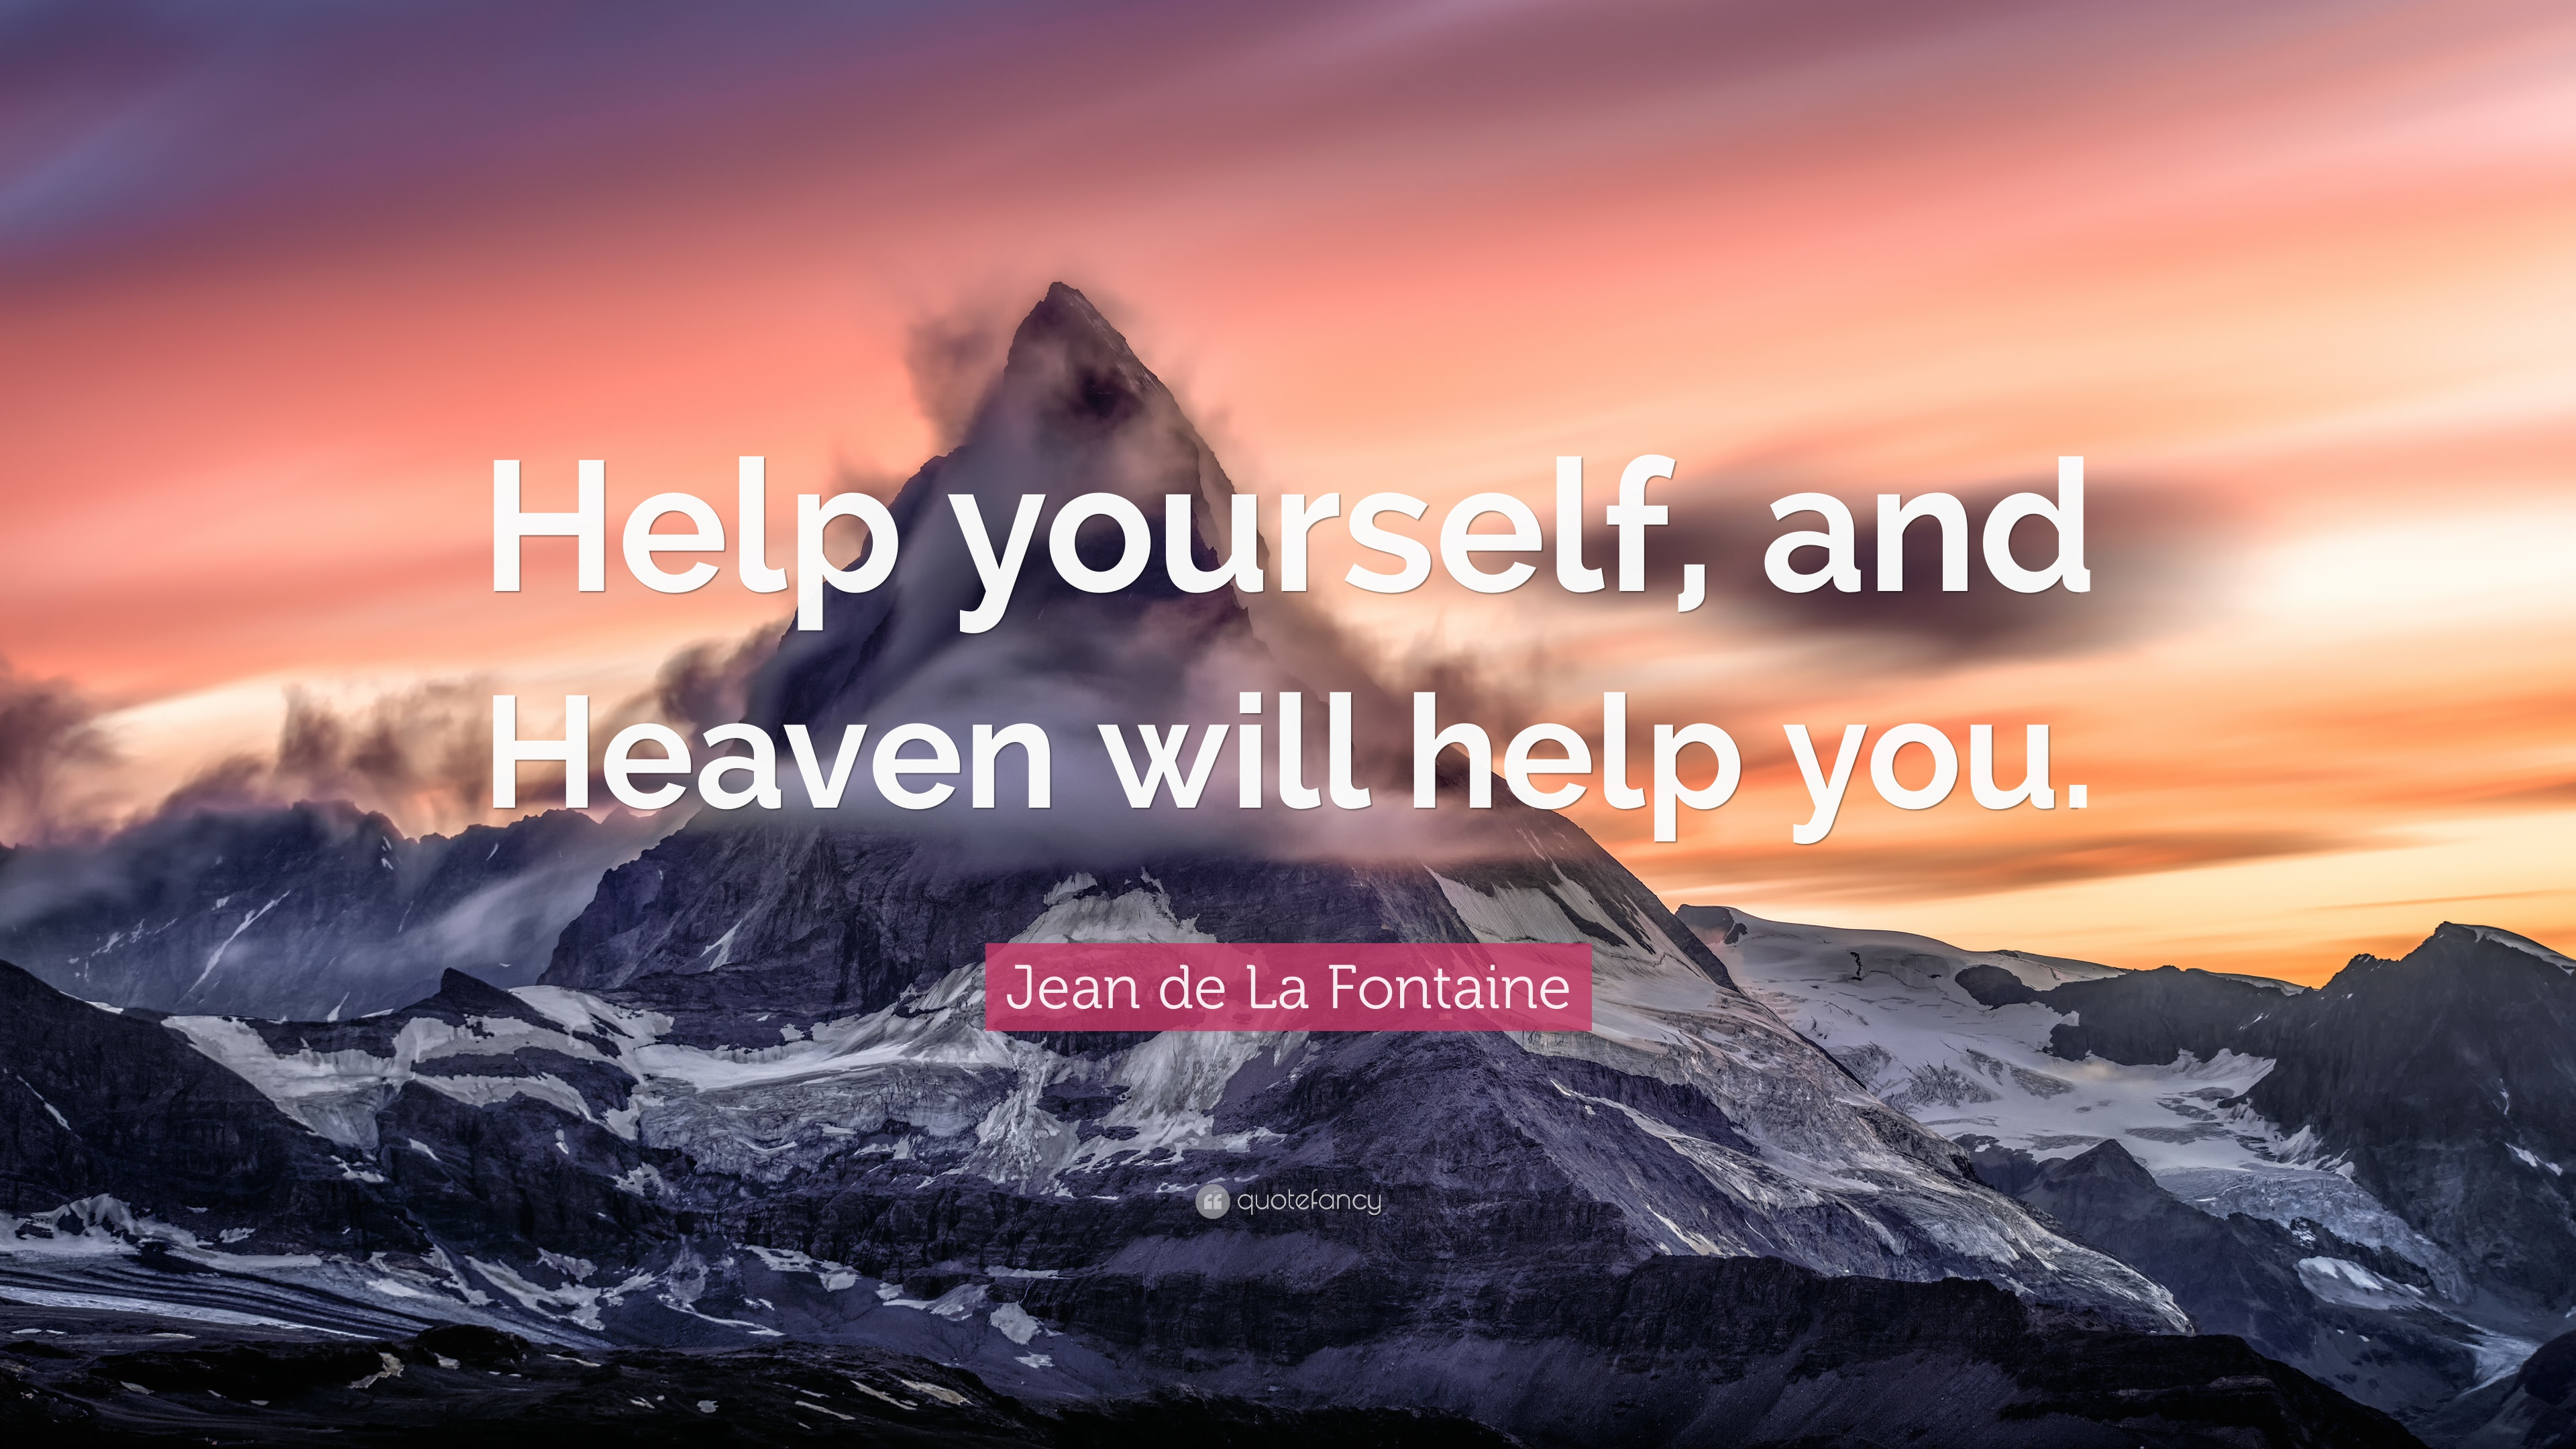 Jean De La Fontaine Quote Help Yourself And Heaven Will Help You